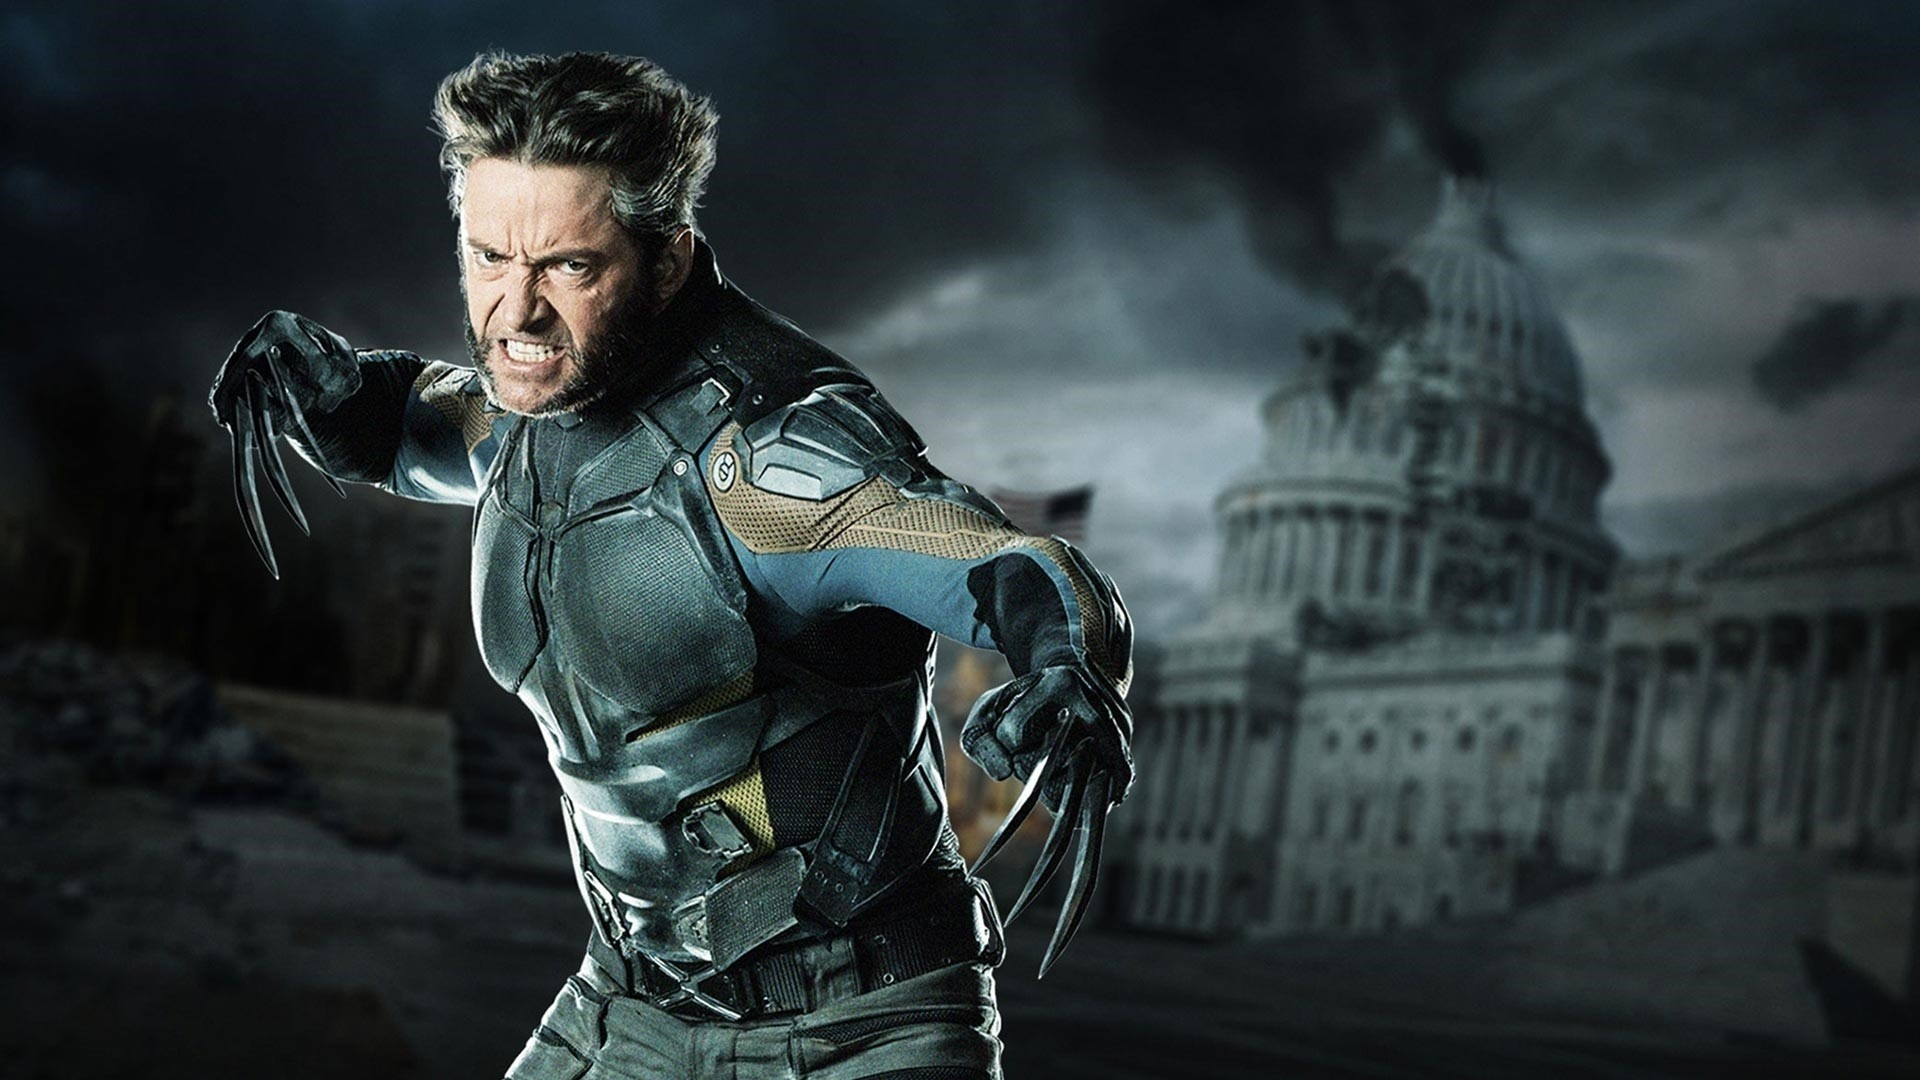 Wolverine Wallpaper for pc